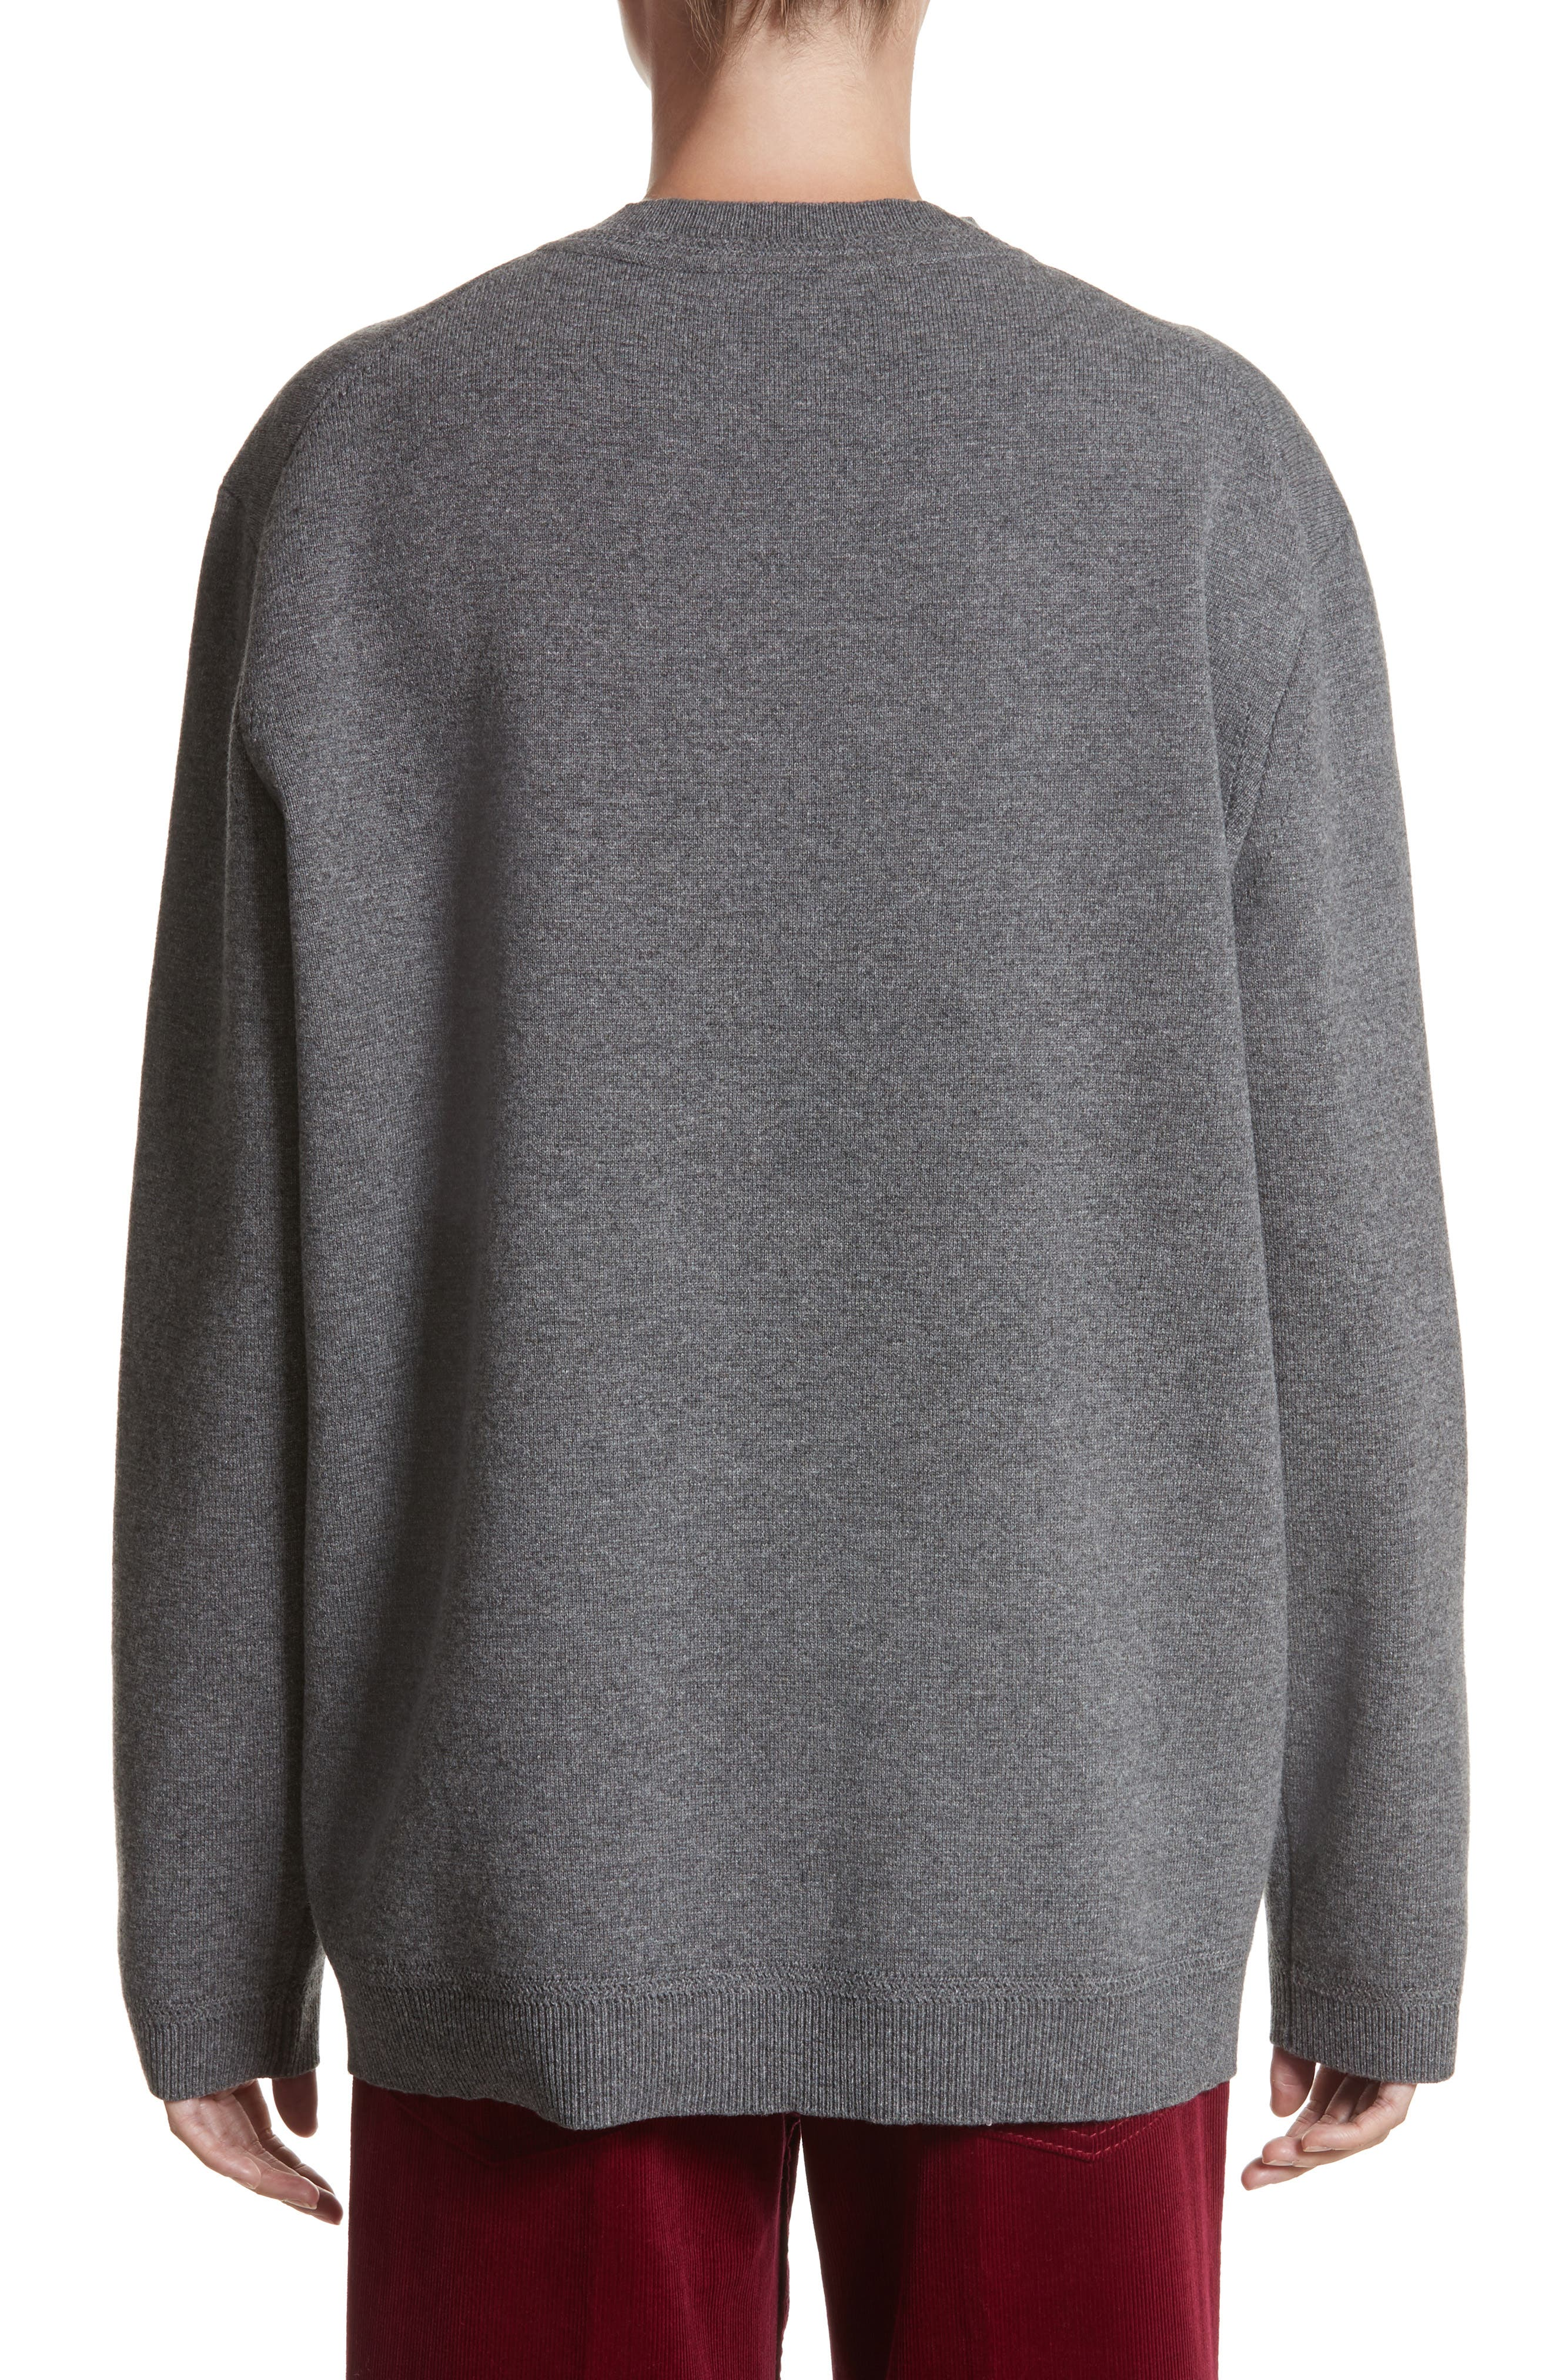 Wool & Cashmere Sweater,                             Alternate thumbnail 2, color,                             032